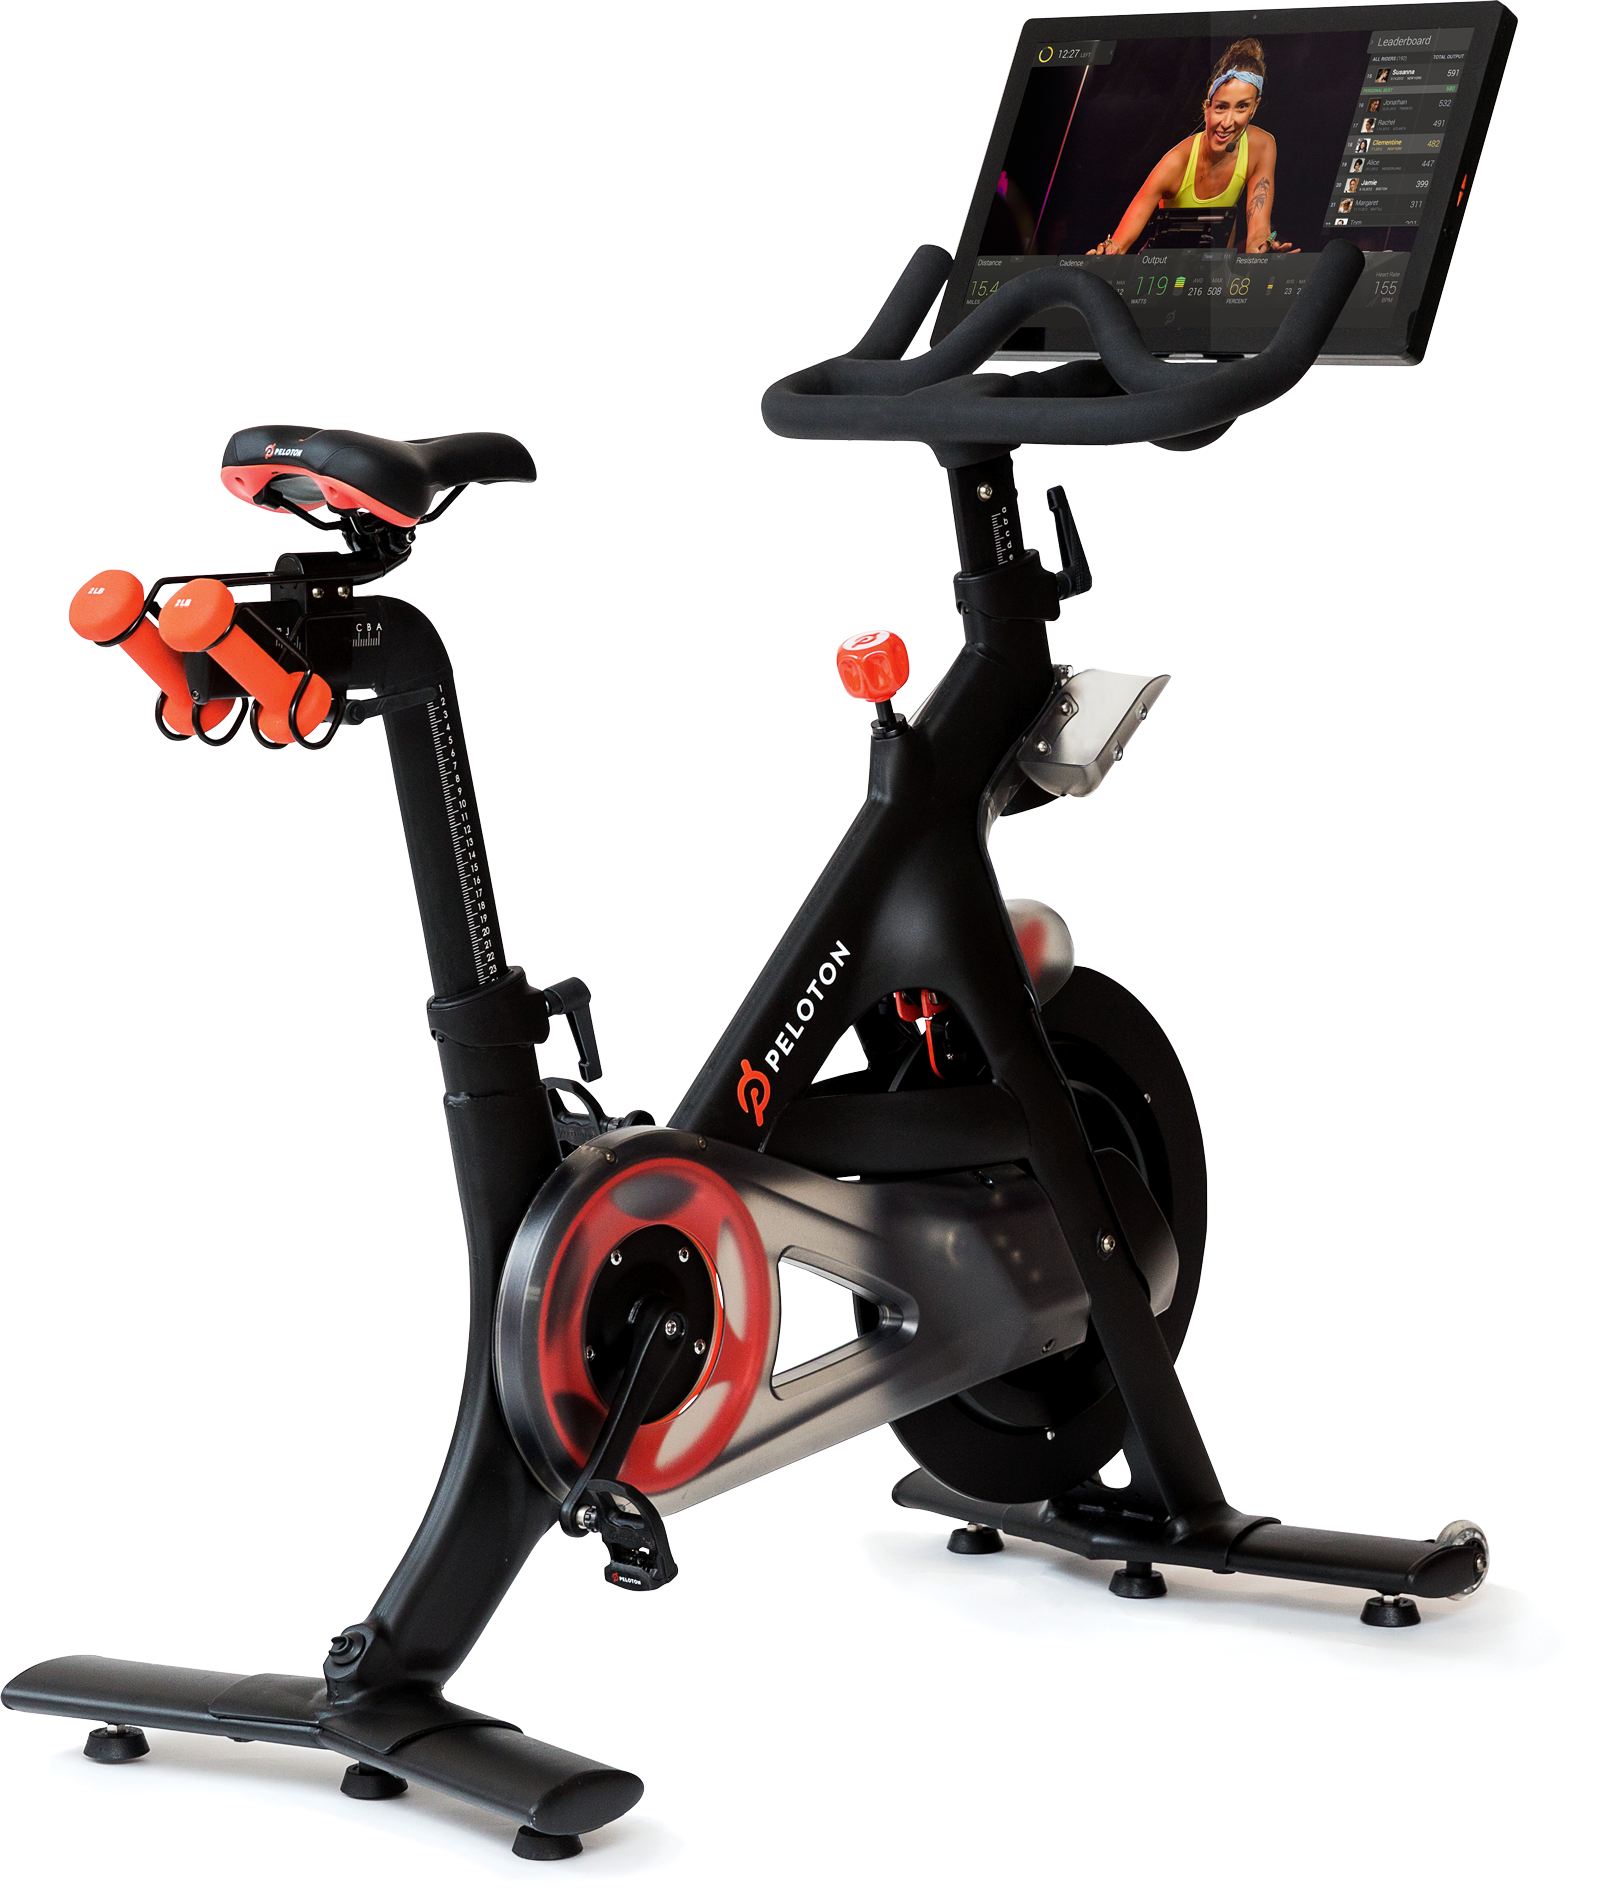 Peloton Cycle The Only Indoor Exercise Bike With Live